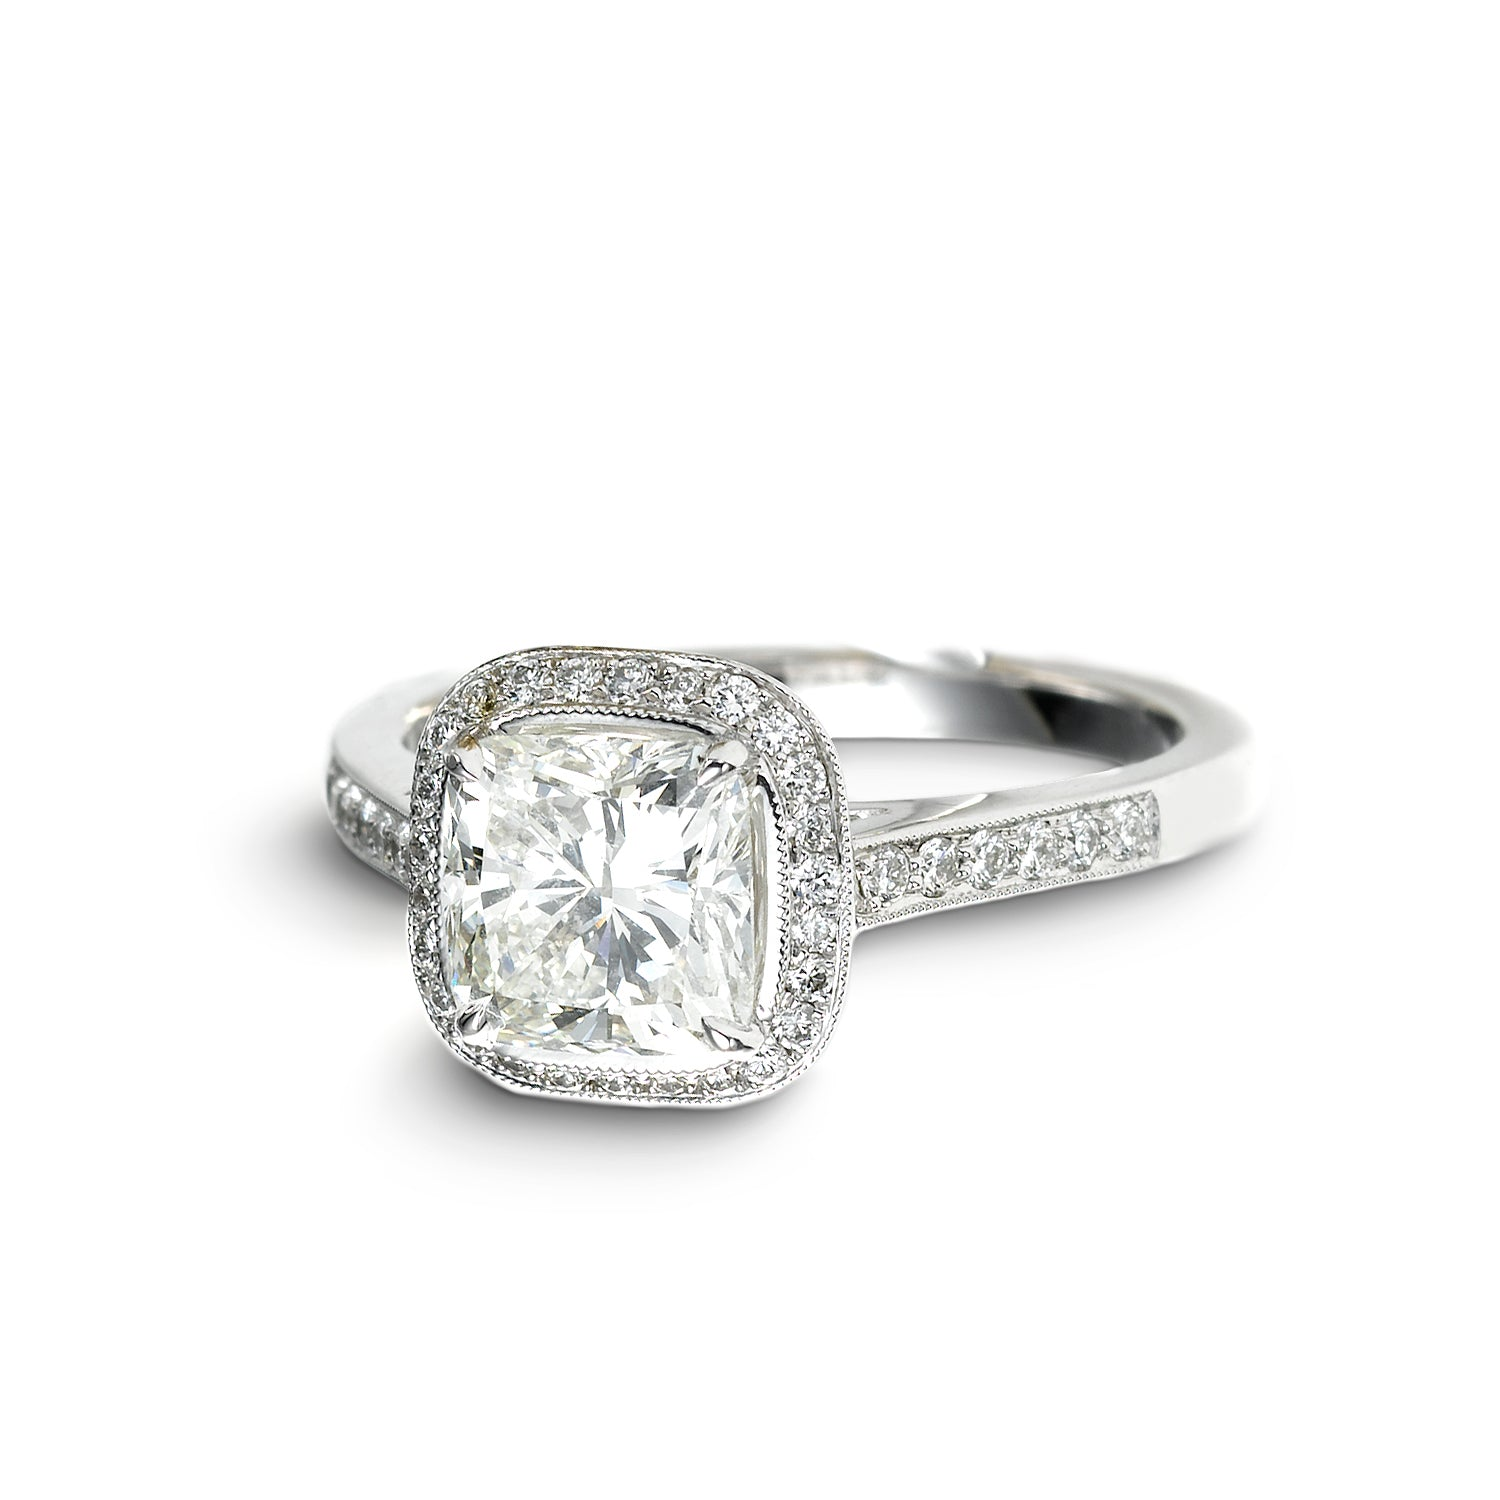 Cushion Cut Diamond Ring, 1.25 Carats, 18K White Gold